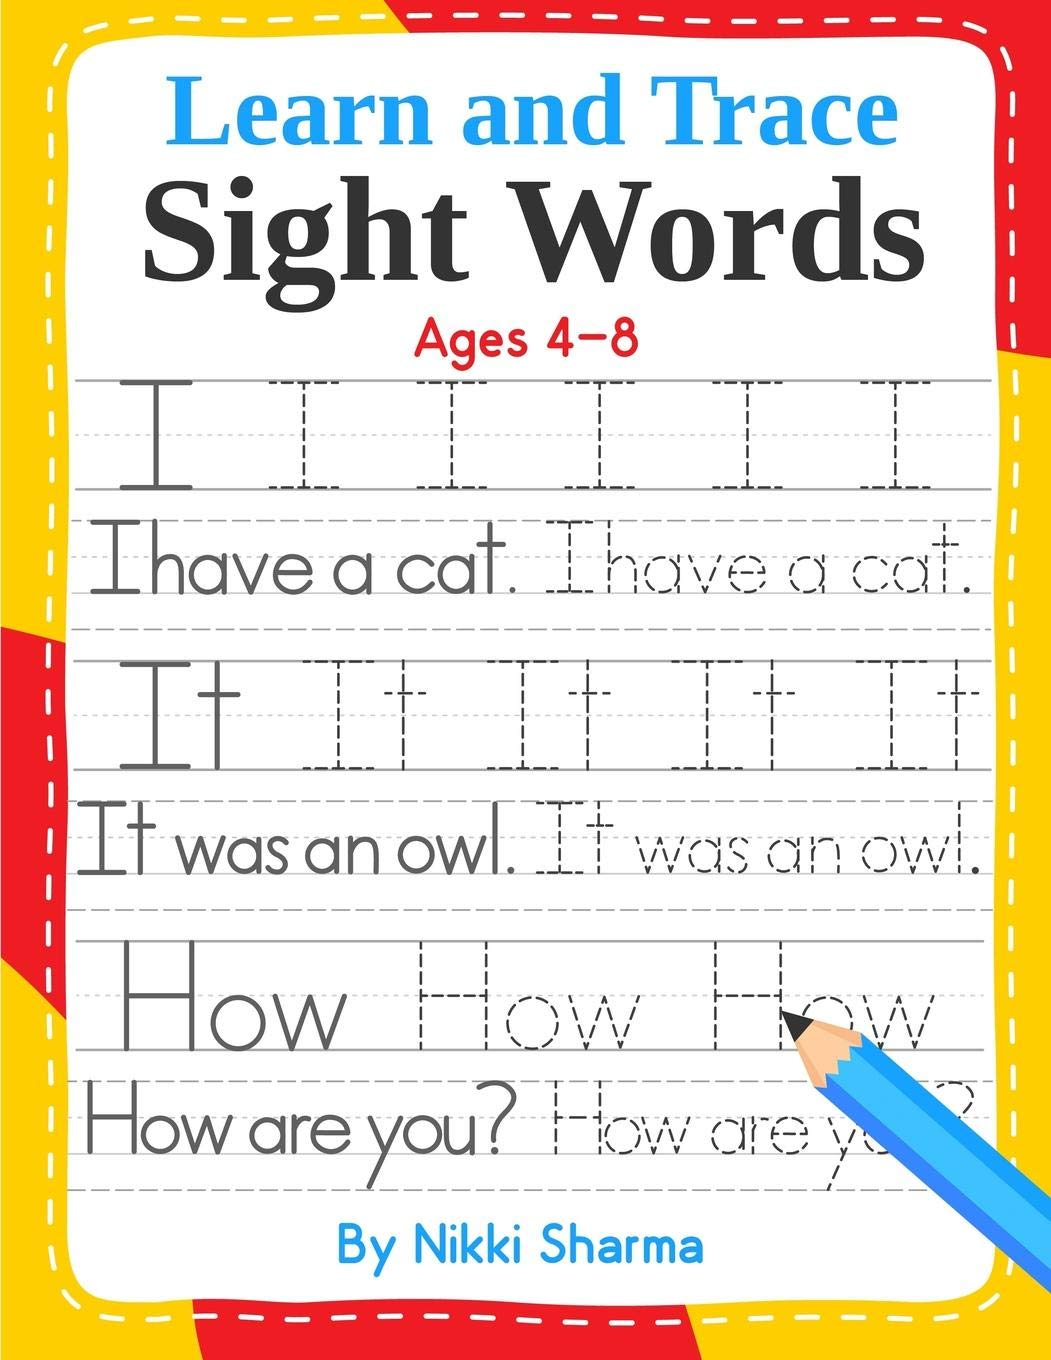 Learn And Trace Sight Words  Step By Step Exercises To Help Kindergarten And First Grade Children Learn To Read Write Spell And Use Essential High Frequency Words